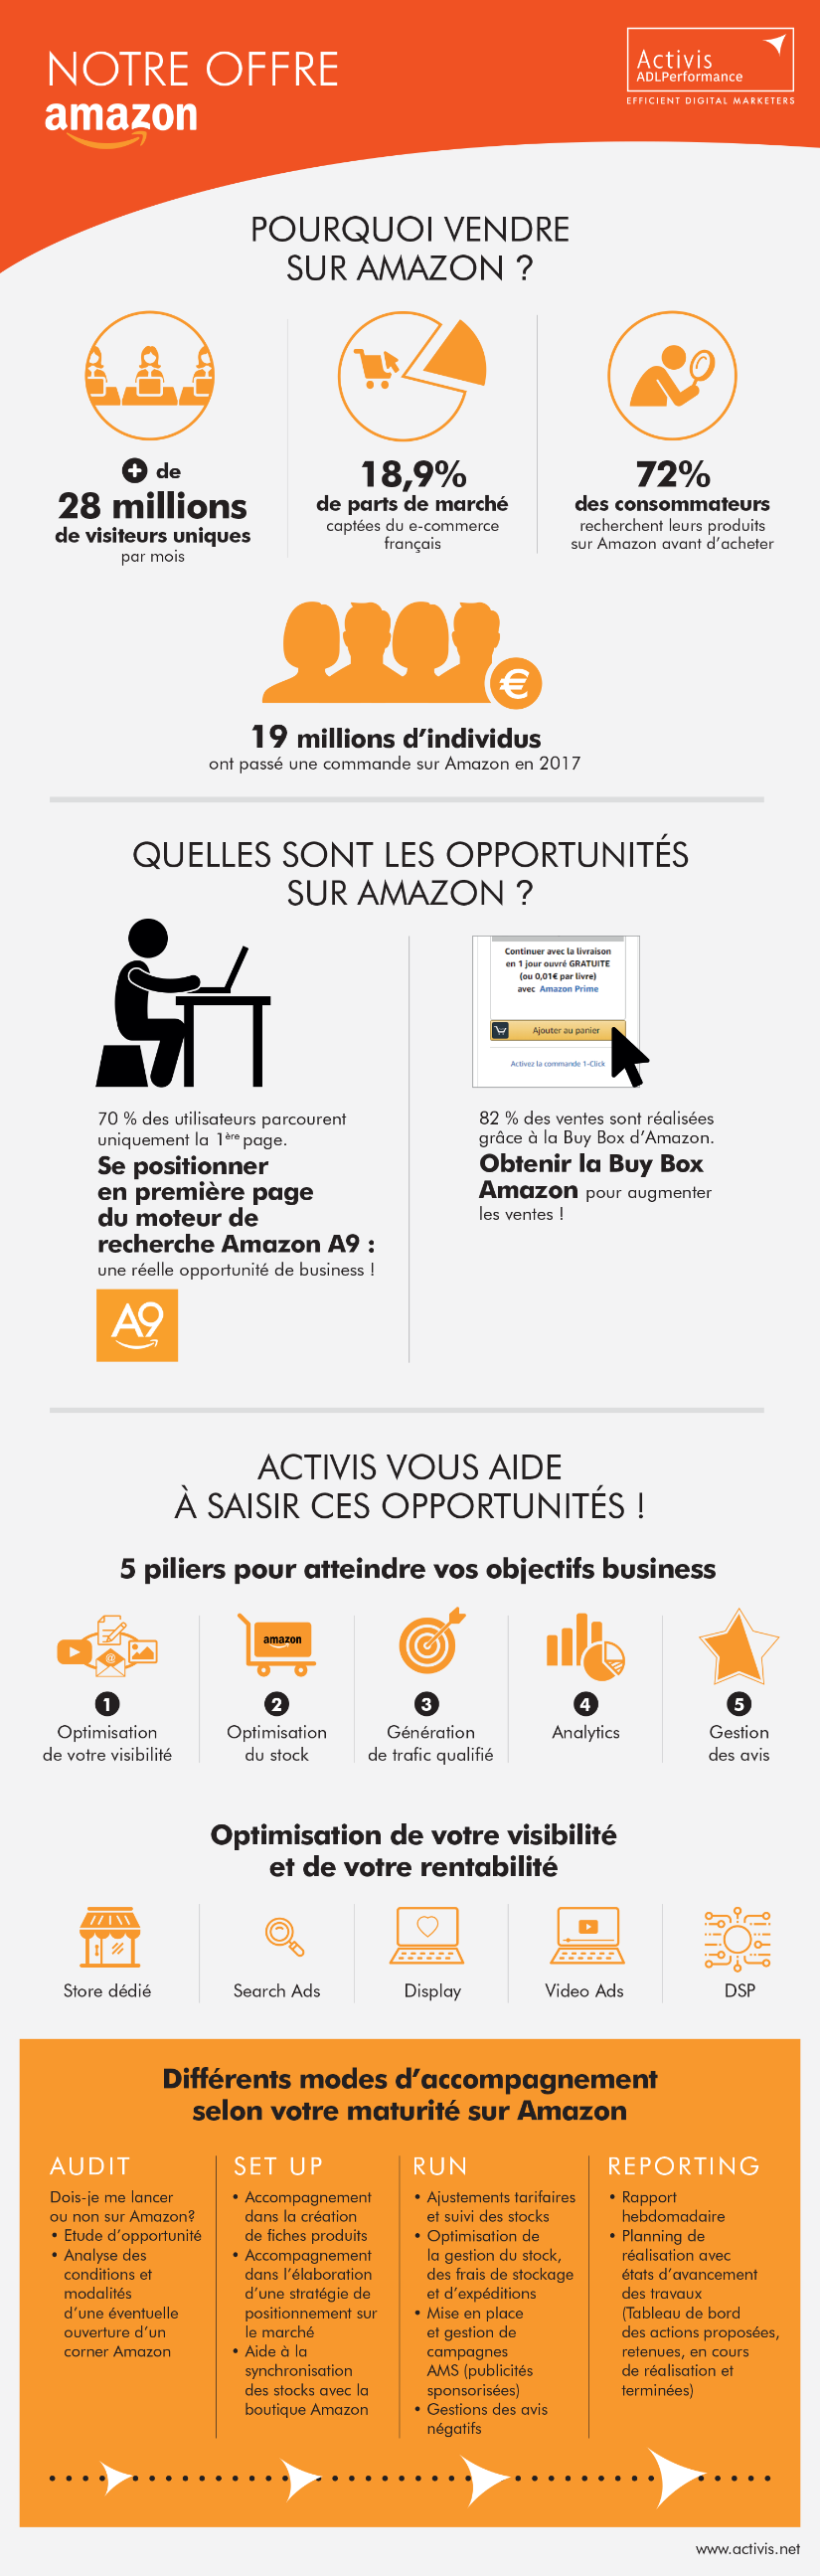 Activis lance son offre d'accompagnement à l'optimisation de la marketplace Amazon